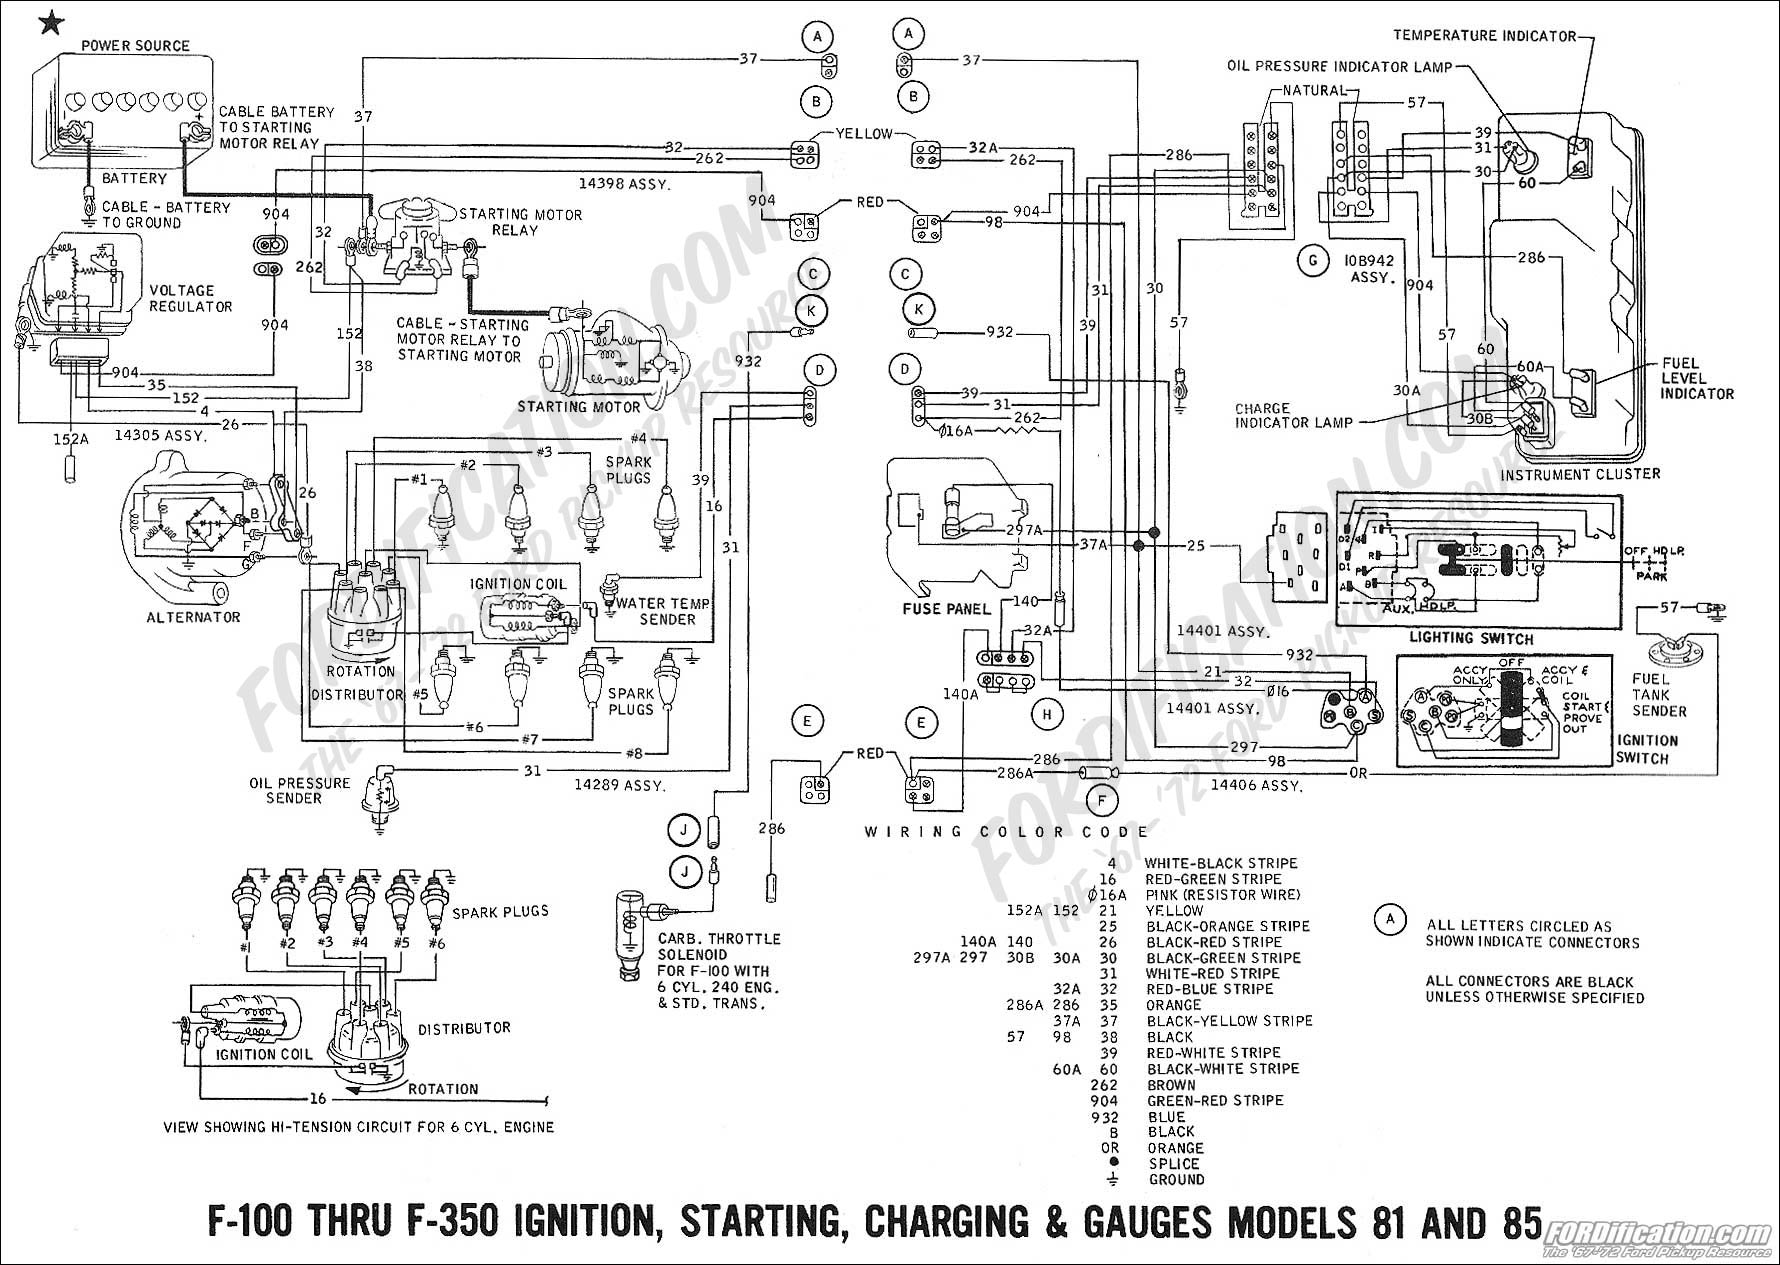 wiring diagram 1997 ford f1 wiring diagram rh s49 ruthdahm de 1997 ford f150 ignition wiring diagram 1997 ford f150 alternator wiring diagram